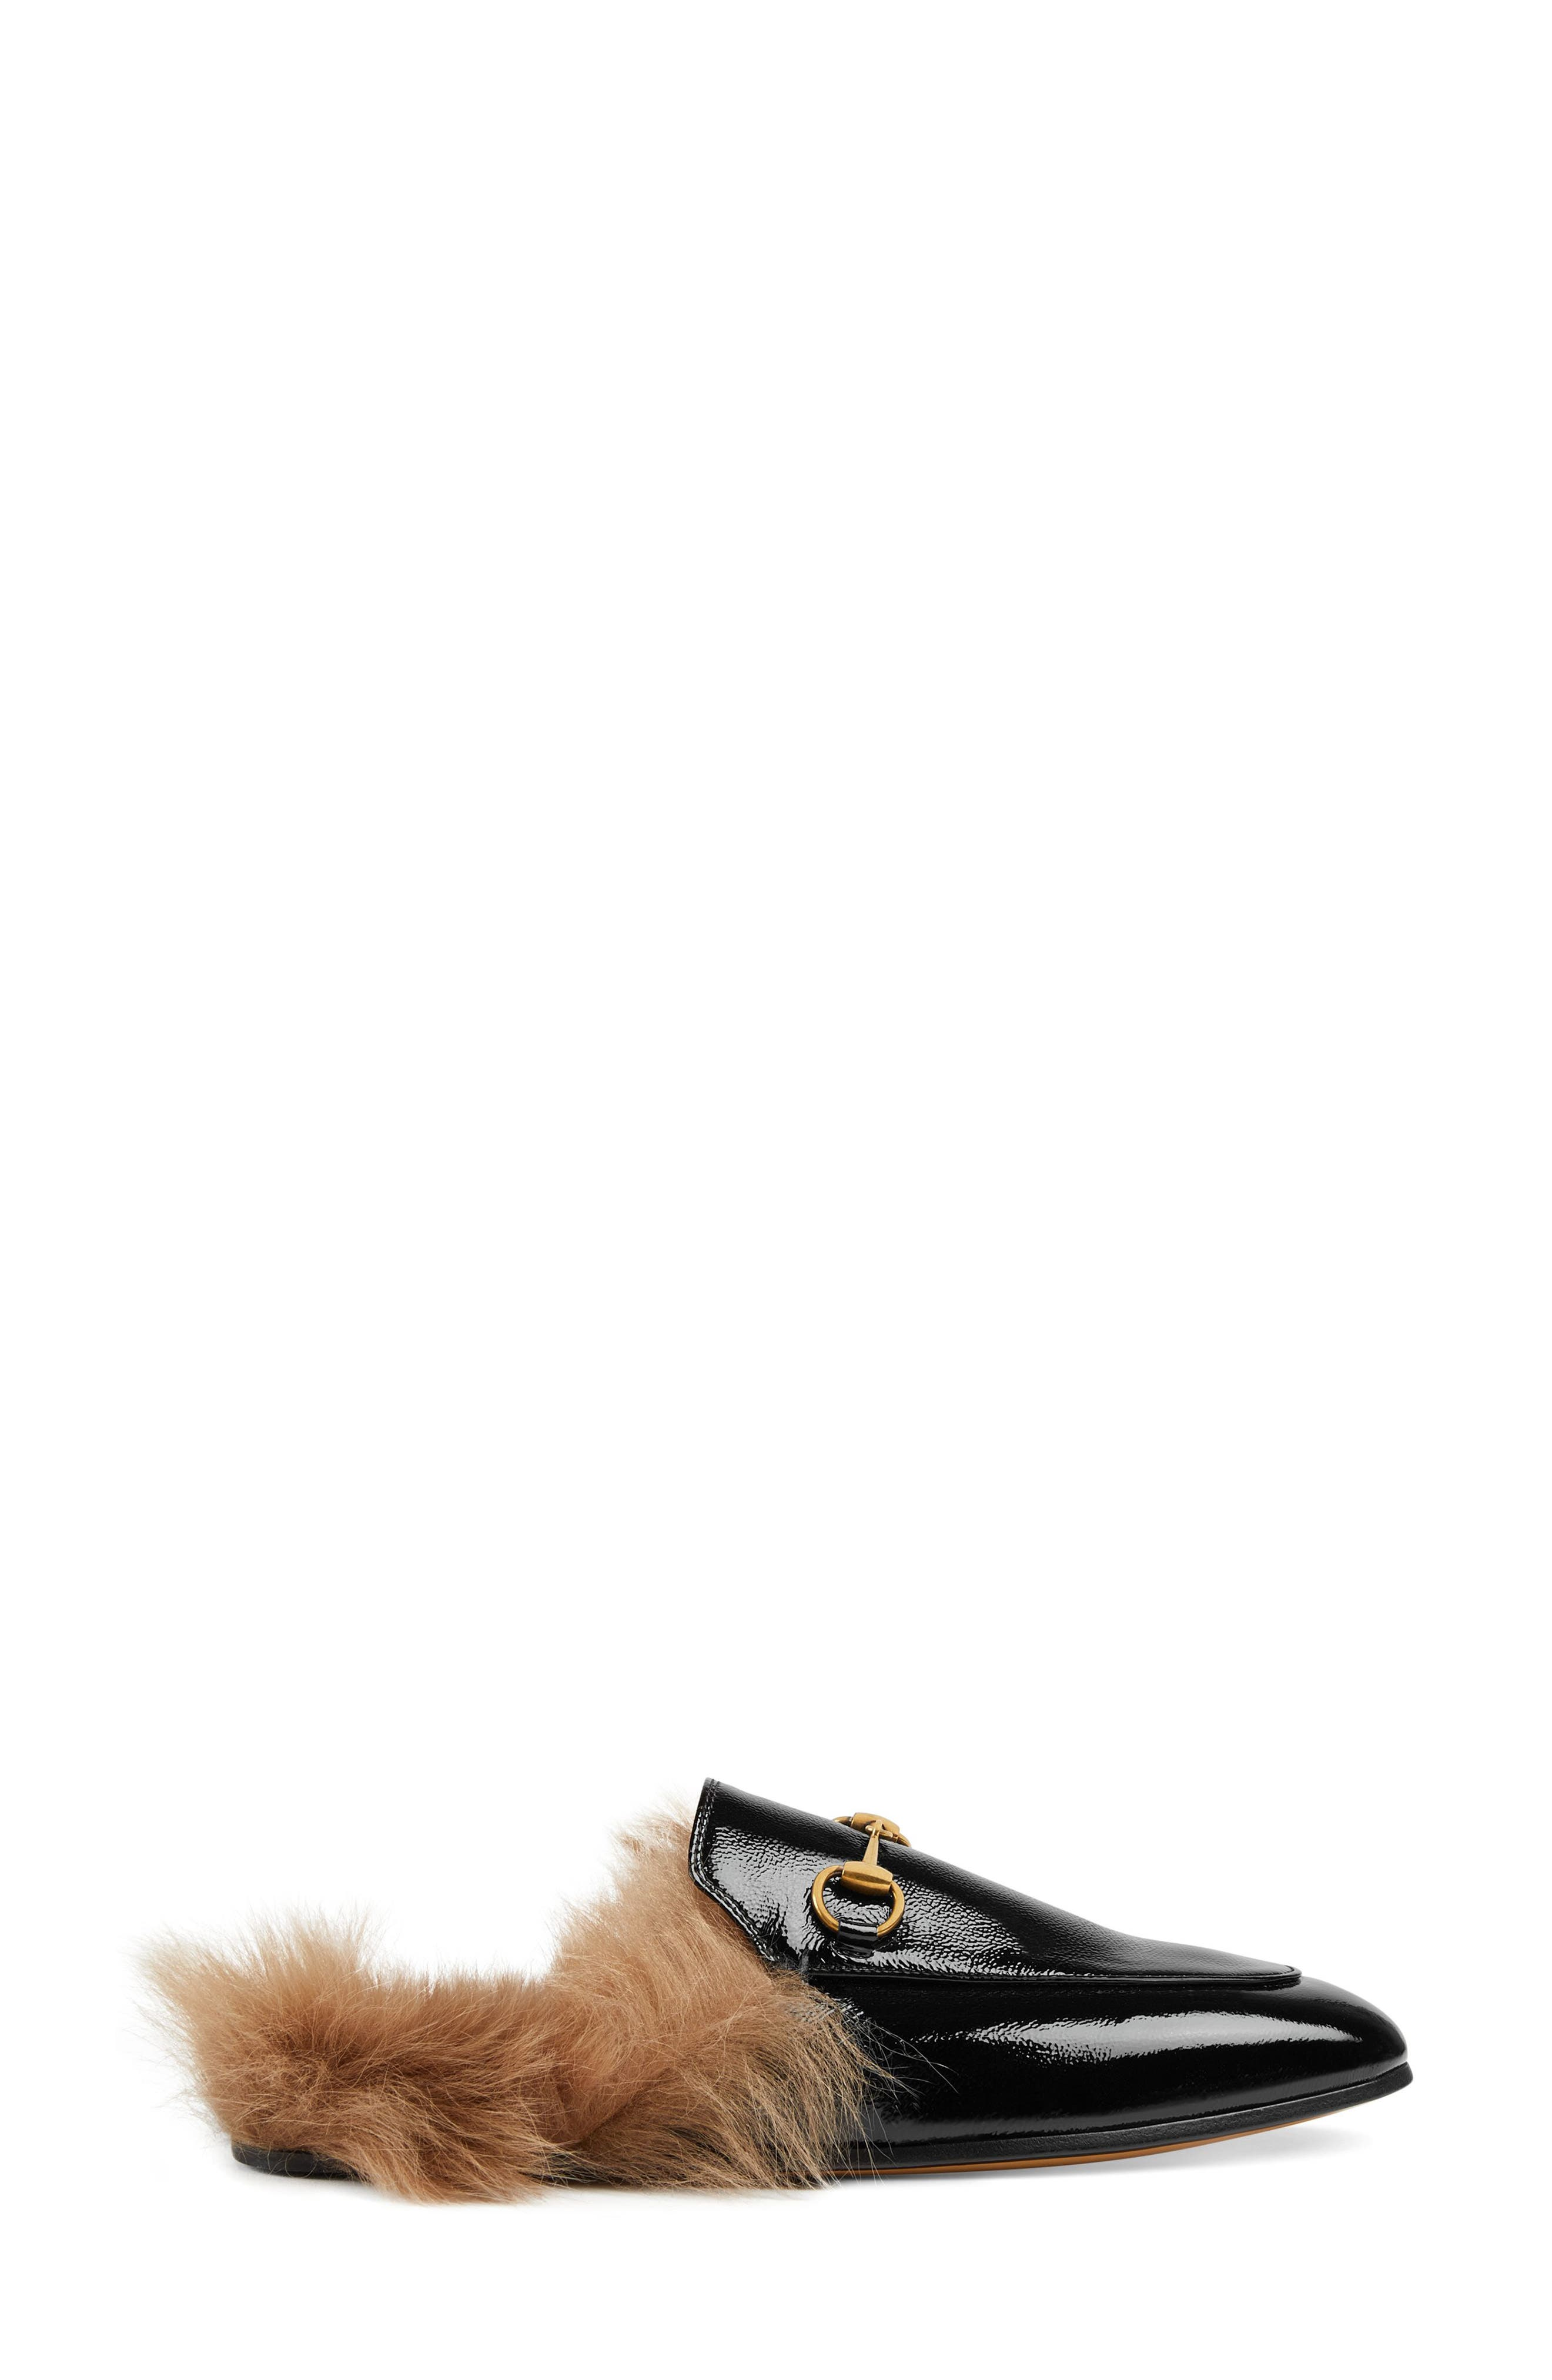 GUCCI, Princetown Genuine Shearling Loafer Mule, Alternate thumbnail 2, color, BLACK PATENT